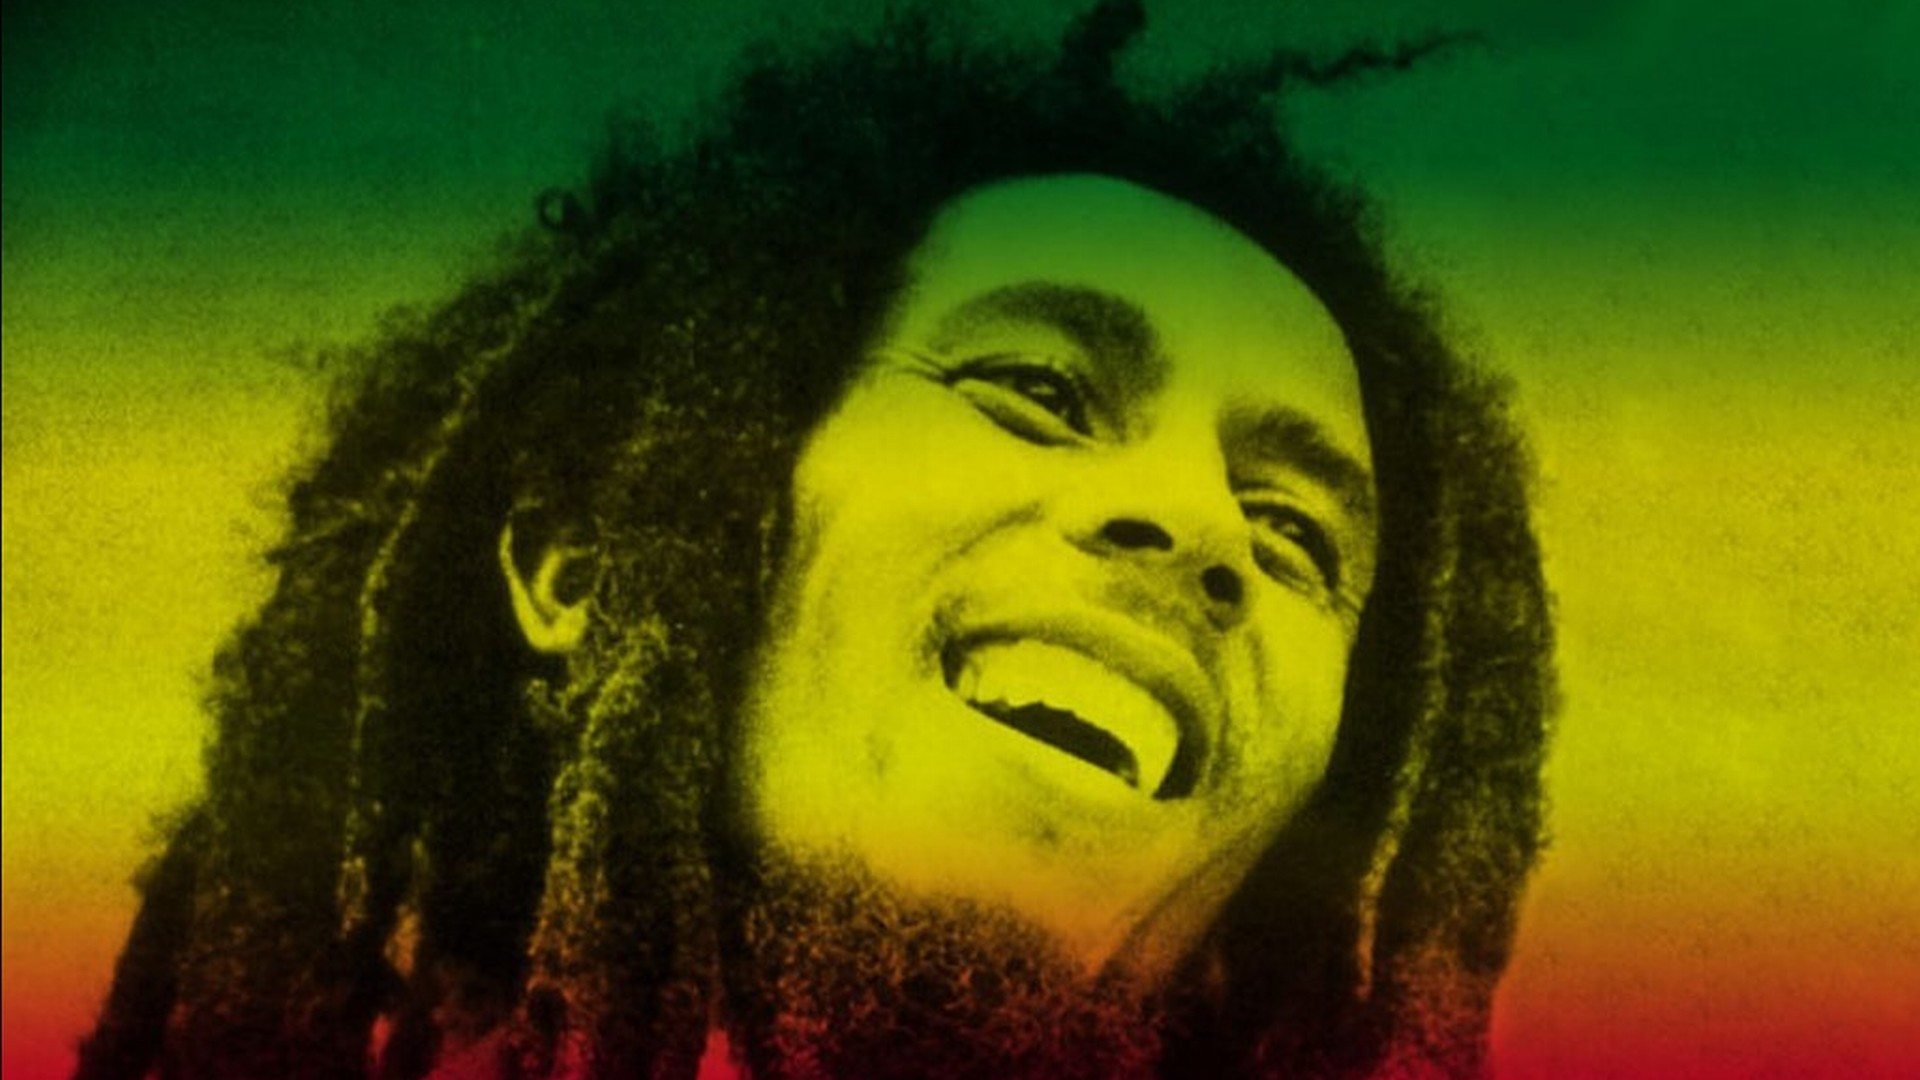 Bob Marley Wallpaper Download Free Beautiful Backgrounds For